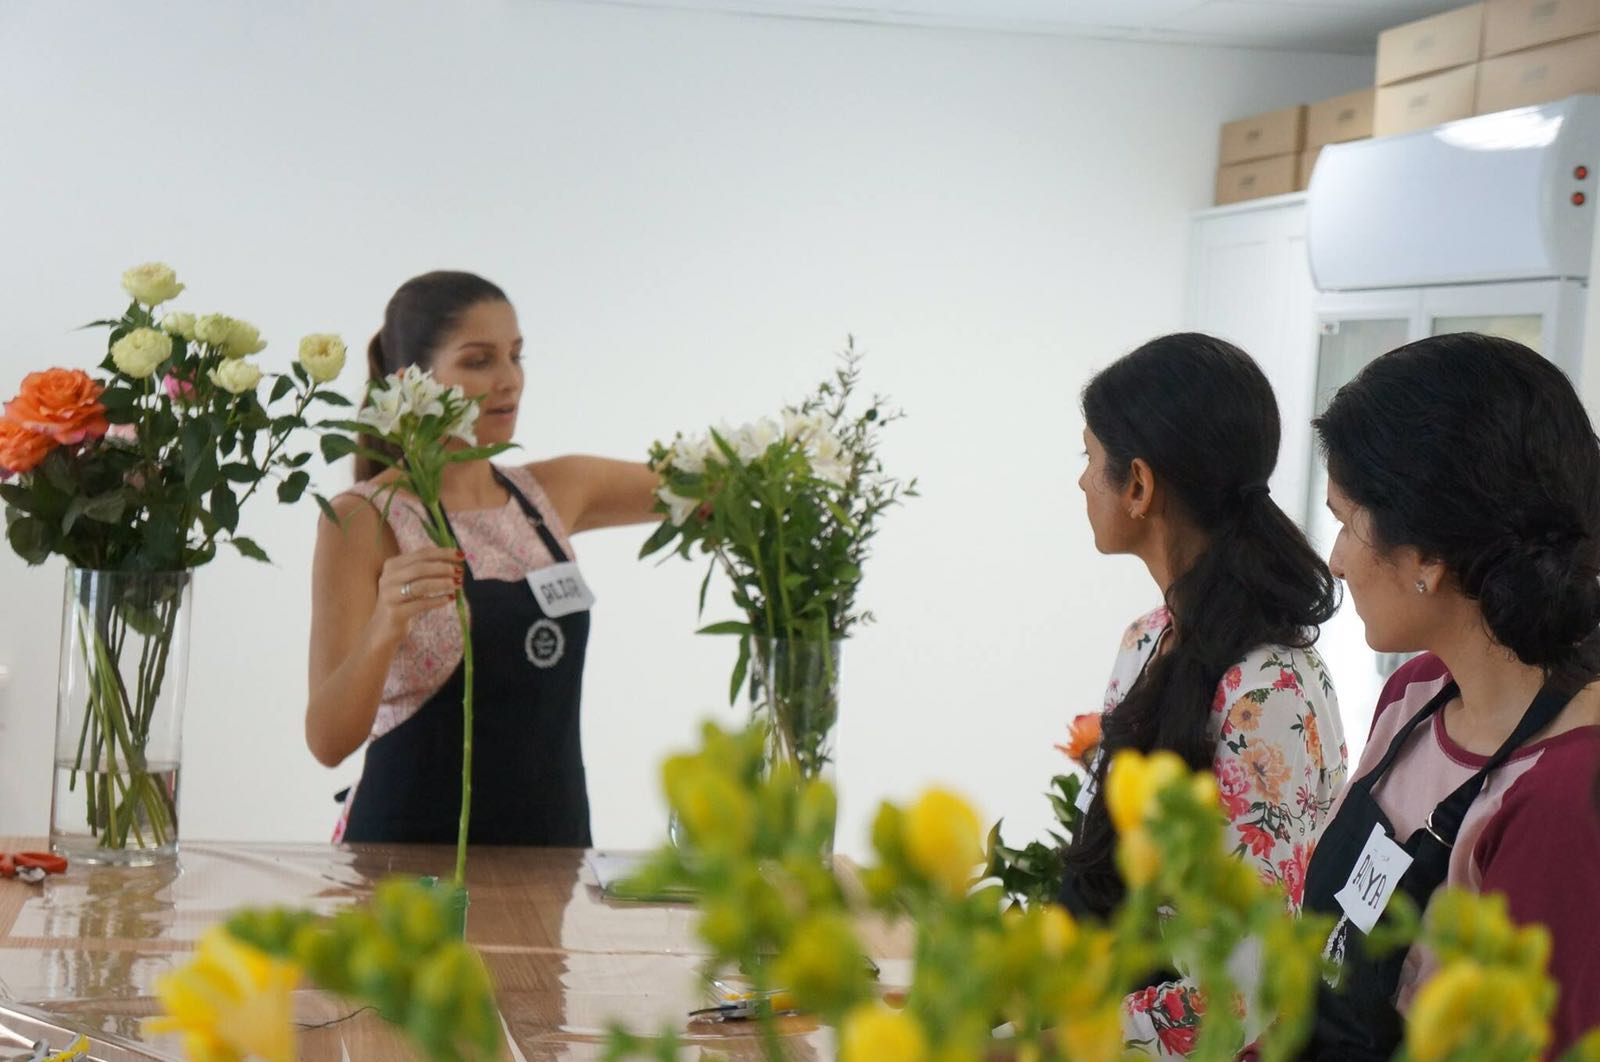 Flower care workshop